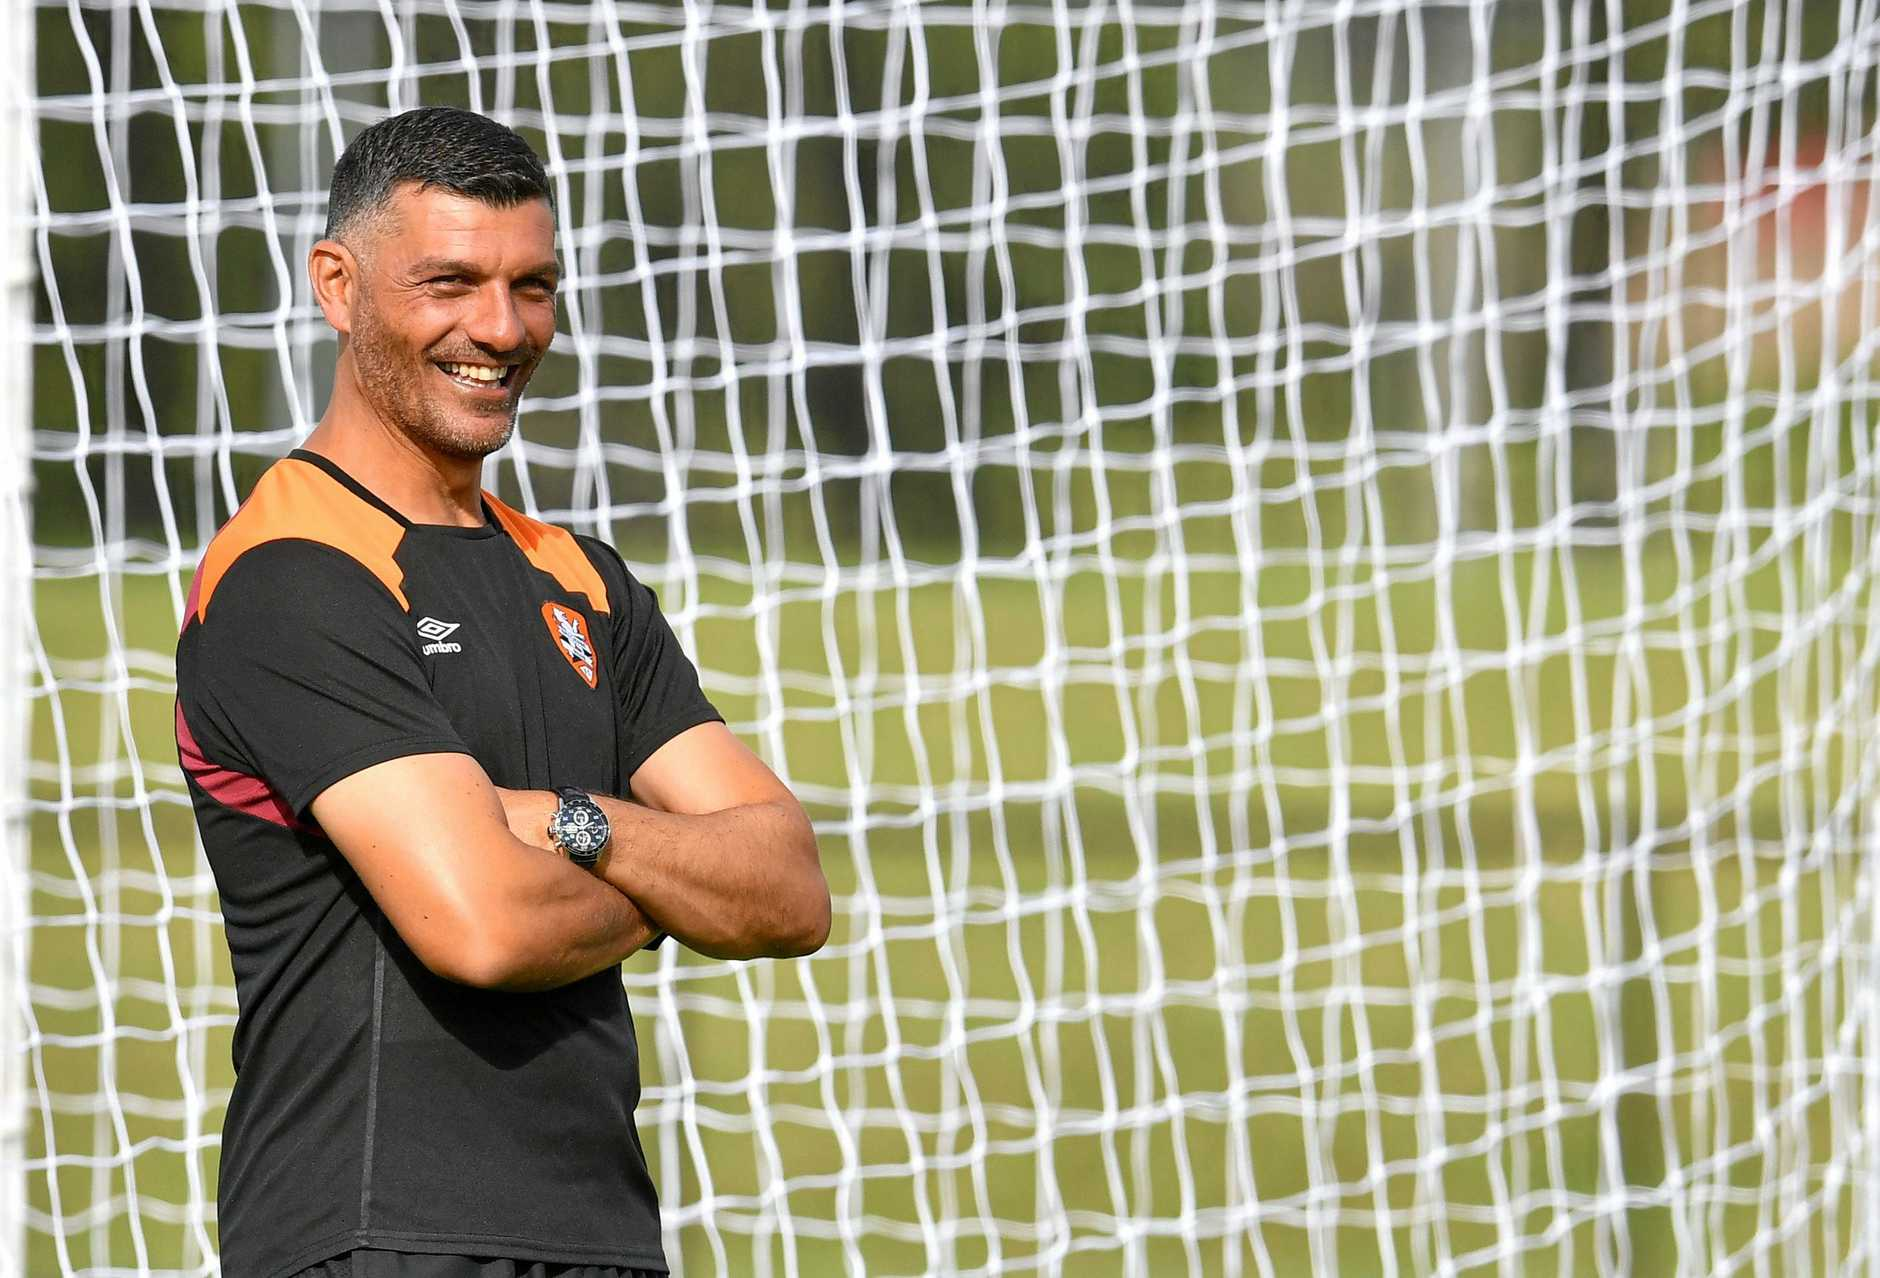 Roar coach John Aloisi is seen during Brisbane Roar training at Logan Metro Sports Park in Logan City, Saturday, March 24, 2018. Brisbane will take on the Wellington Phoenix in their Round 24 A-League clash on Sunday in Wellington. (AAP Image/Darren England) NO ARCHIVING